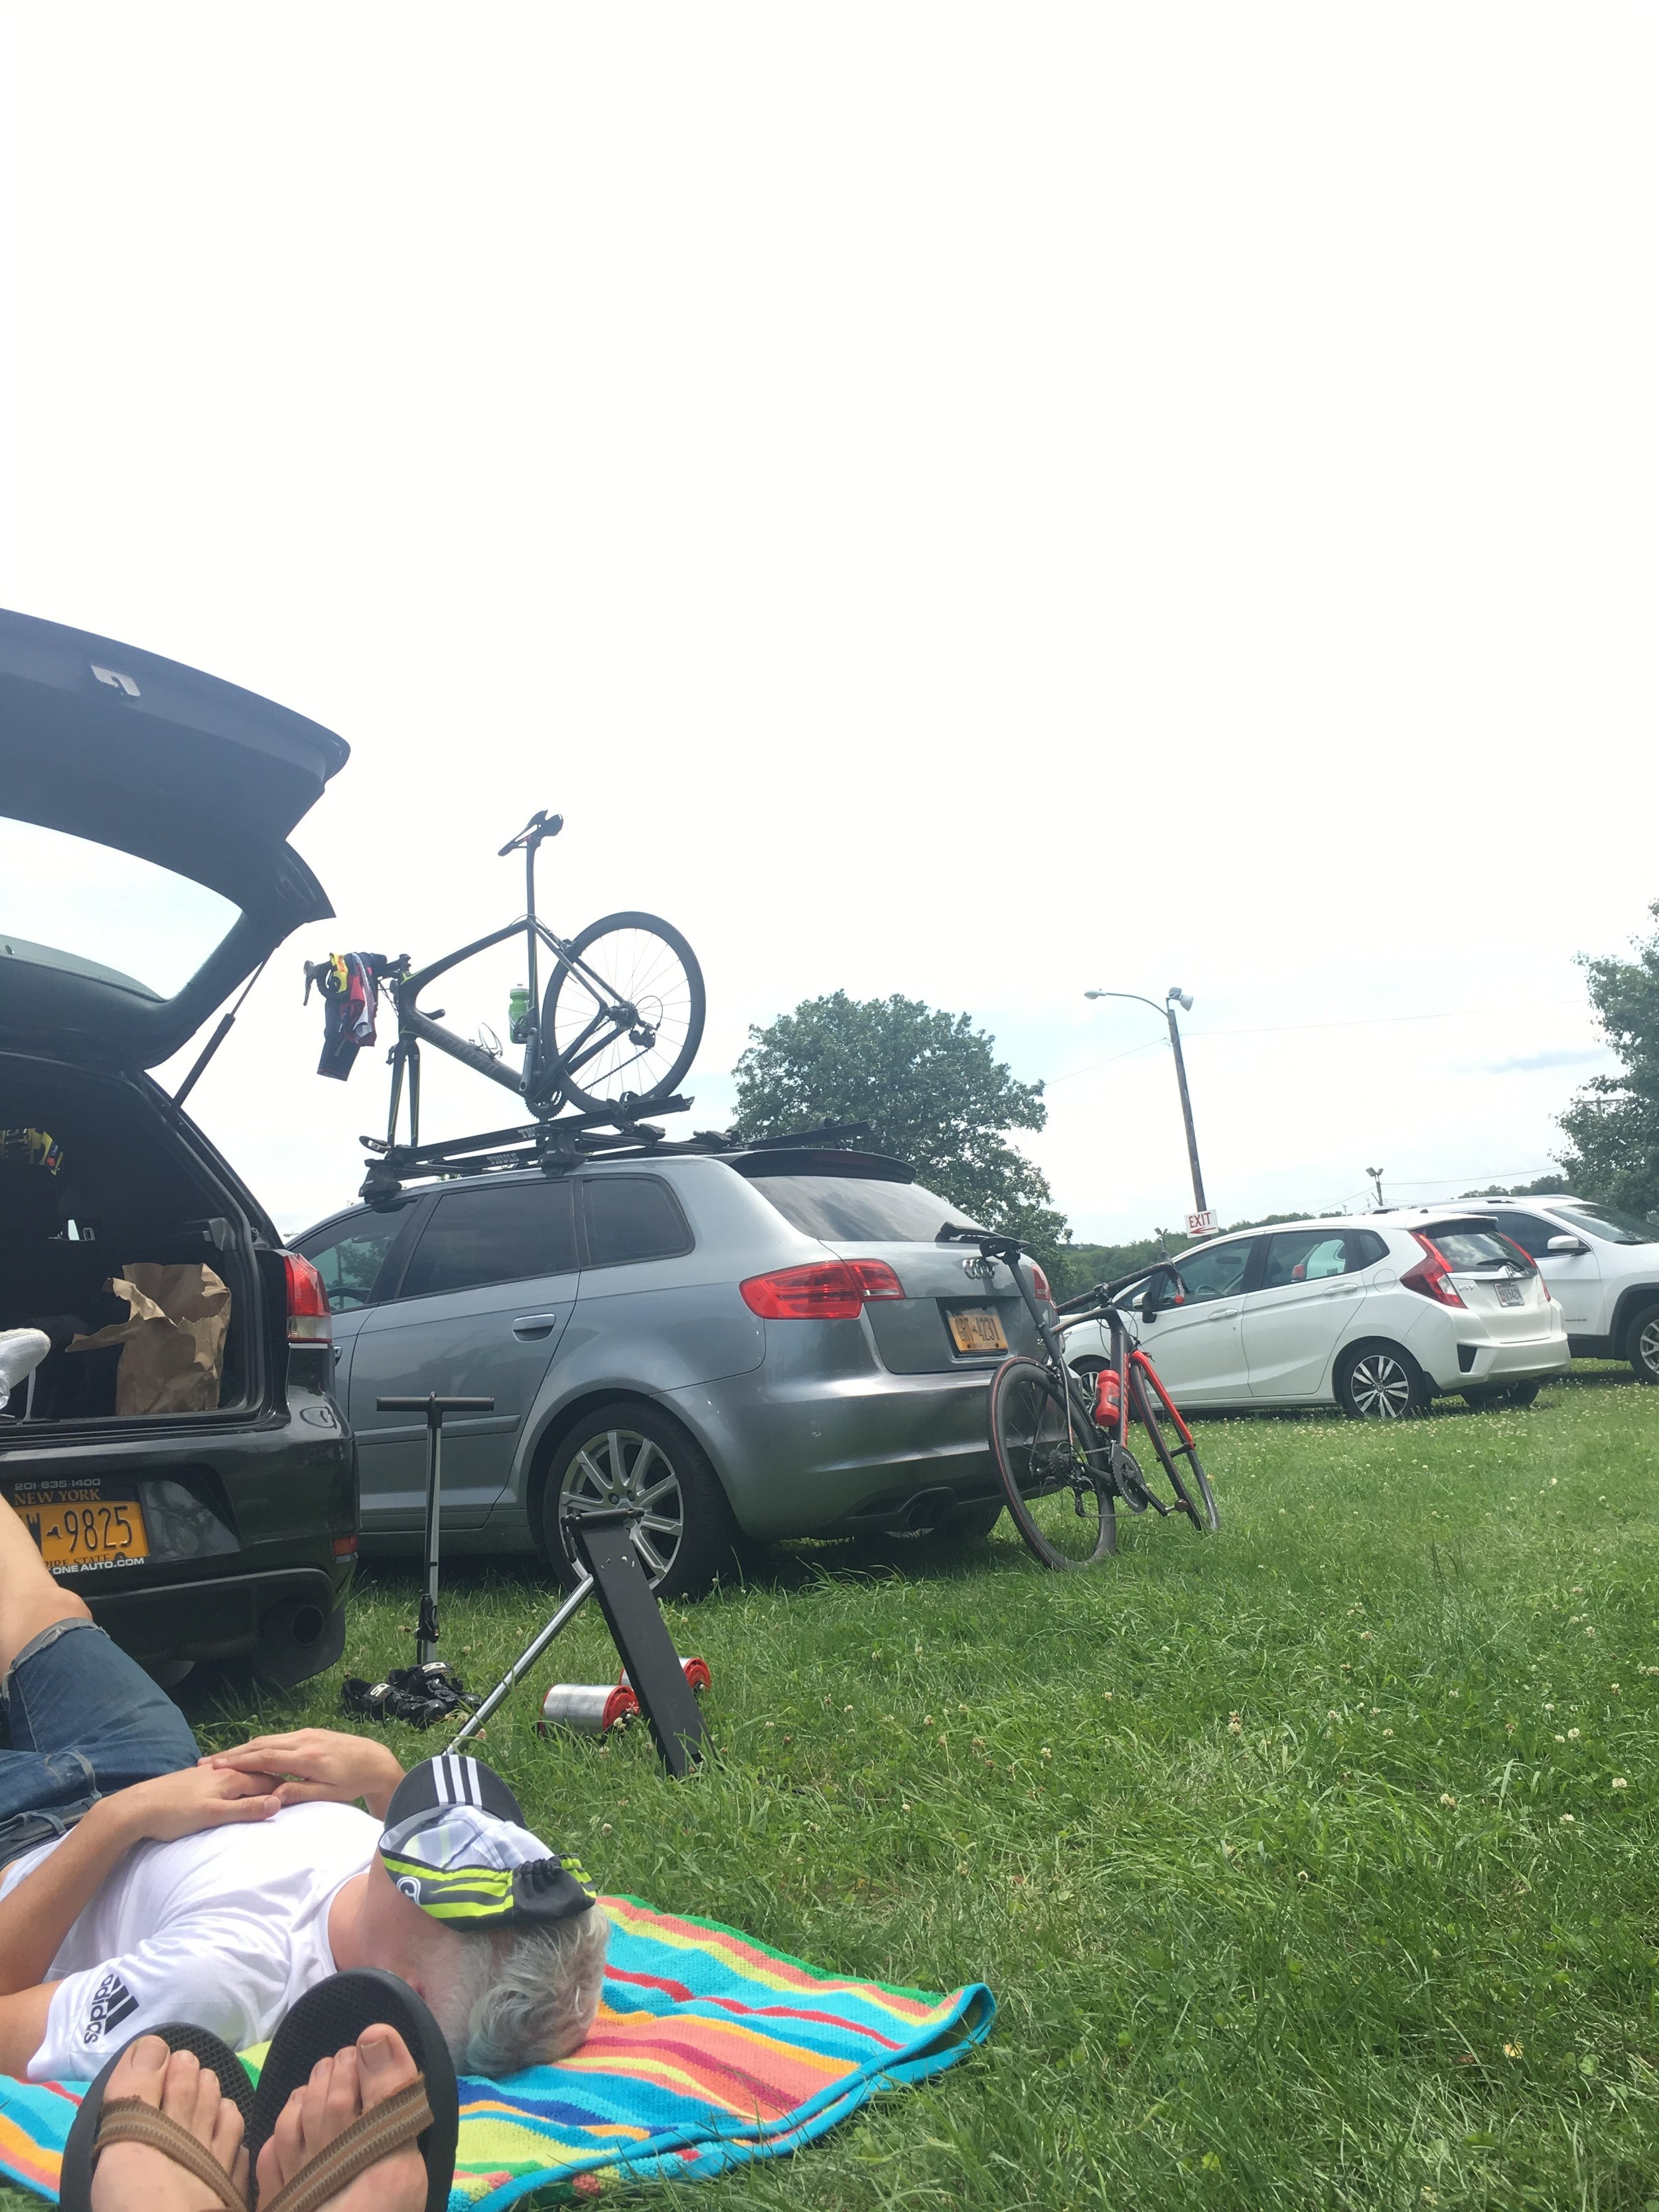 County fair ground Saturday afternoon (post TT pre-Crit) naps